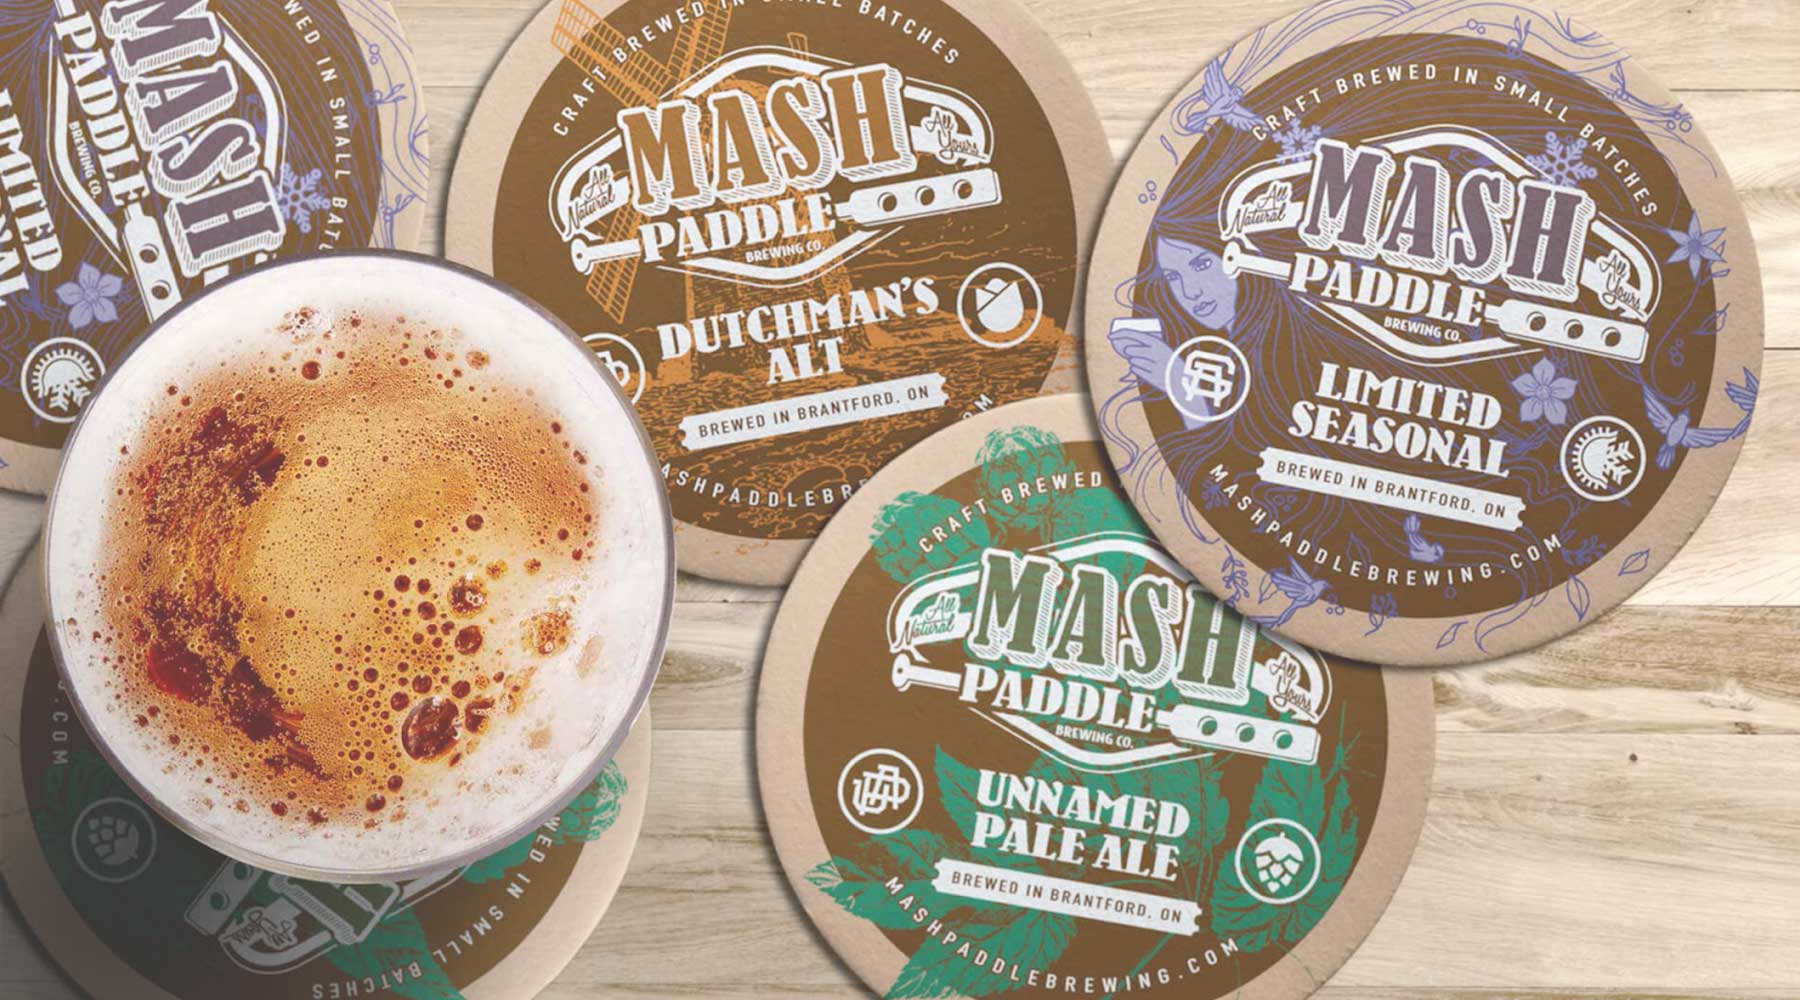 Mash Paddle Brewing Co. | Just Wine